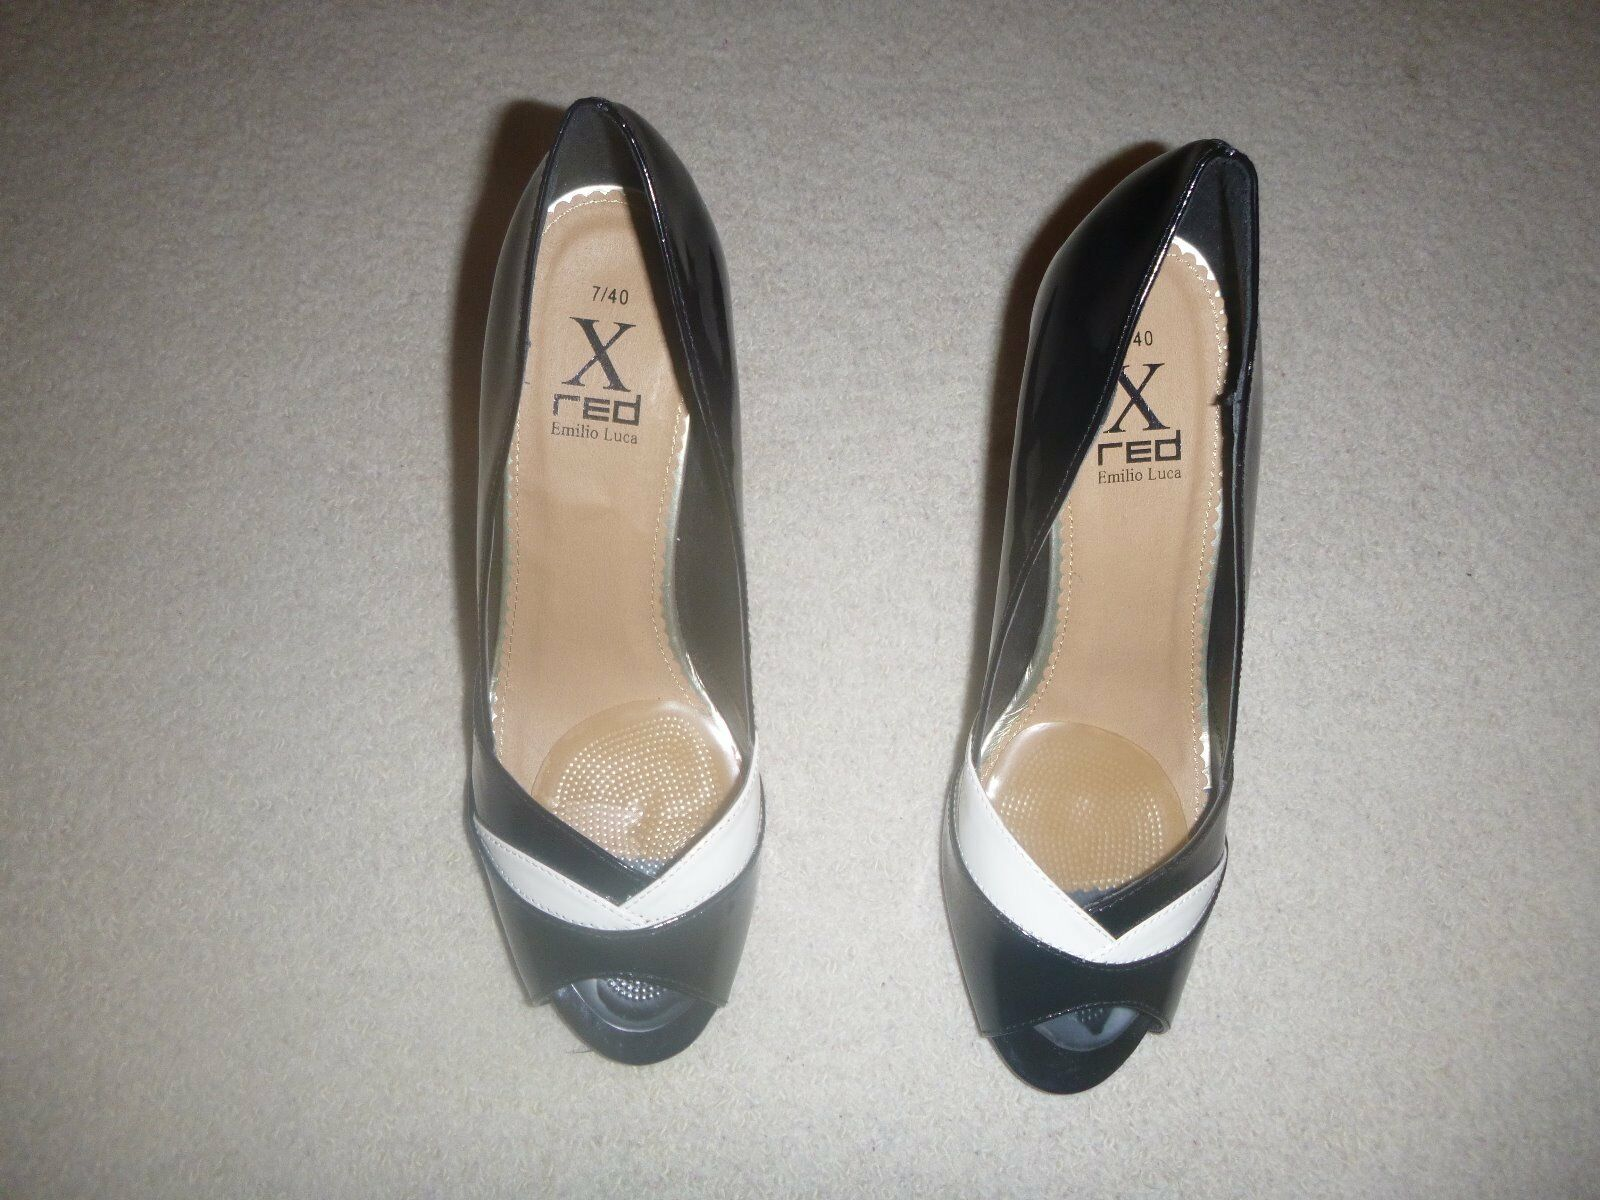 X Red Black White Patent Leather Open Toe Court shoes (New) UK 7    EU 40